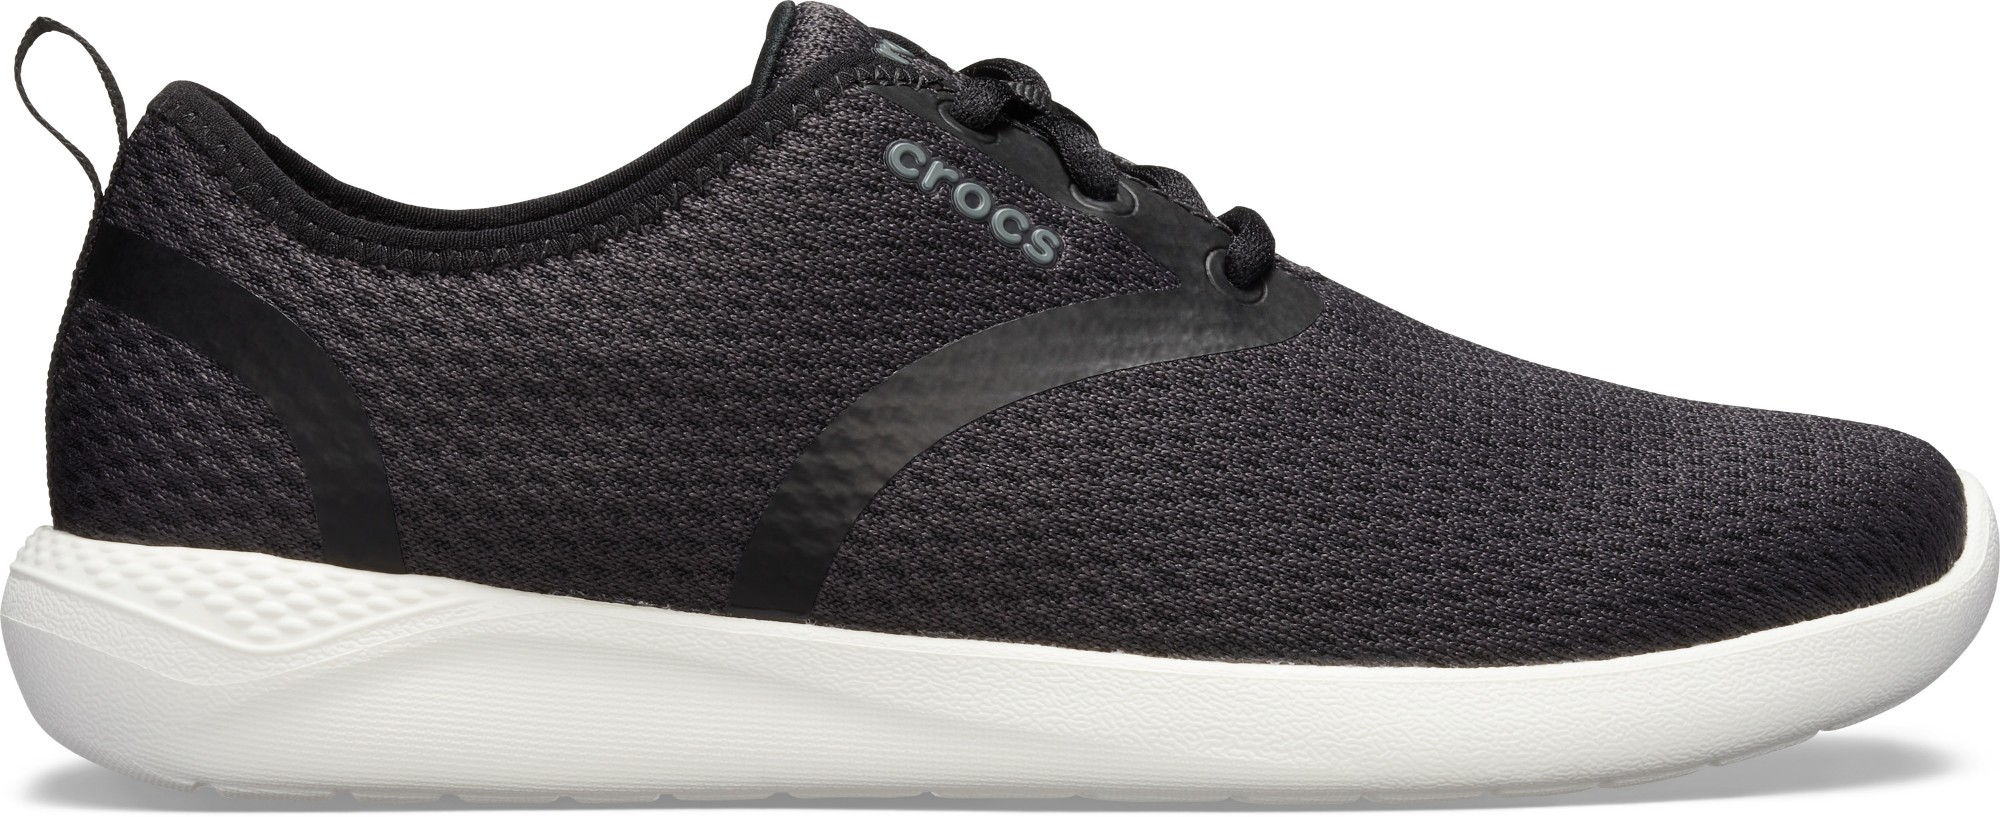 Crocs™ LiteRide Mesh Lace Women's Black/White 39,5